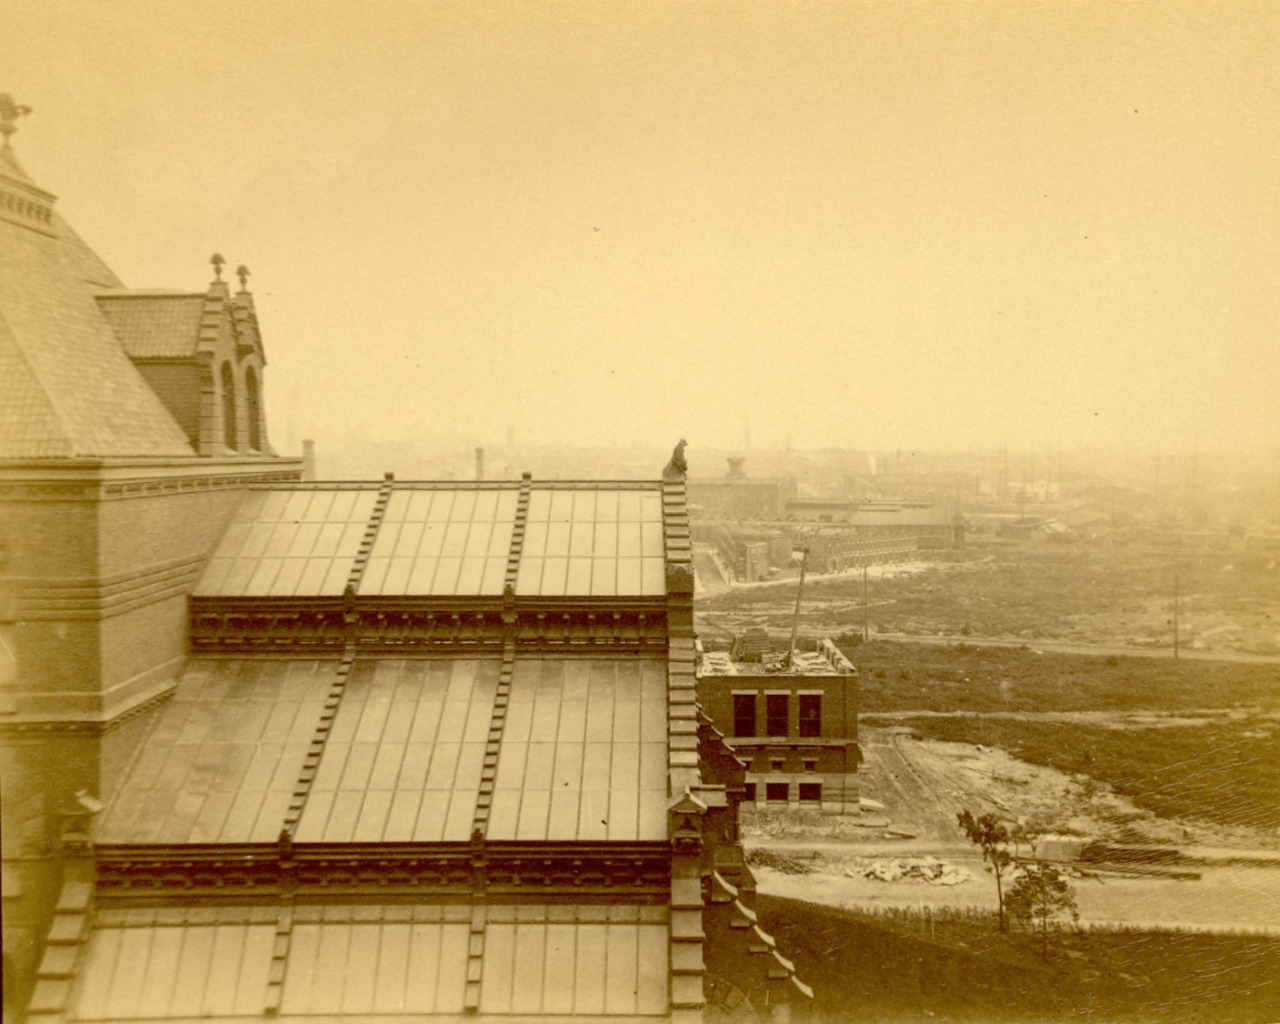 A vintage photo of the glass-roofed stacks section prior to the addition of the Duhring Wing in 1916.